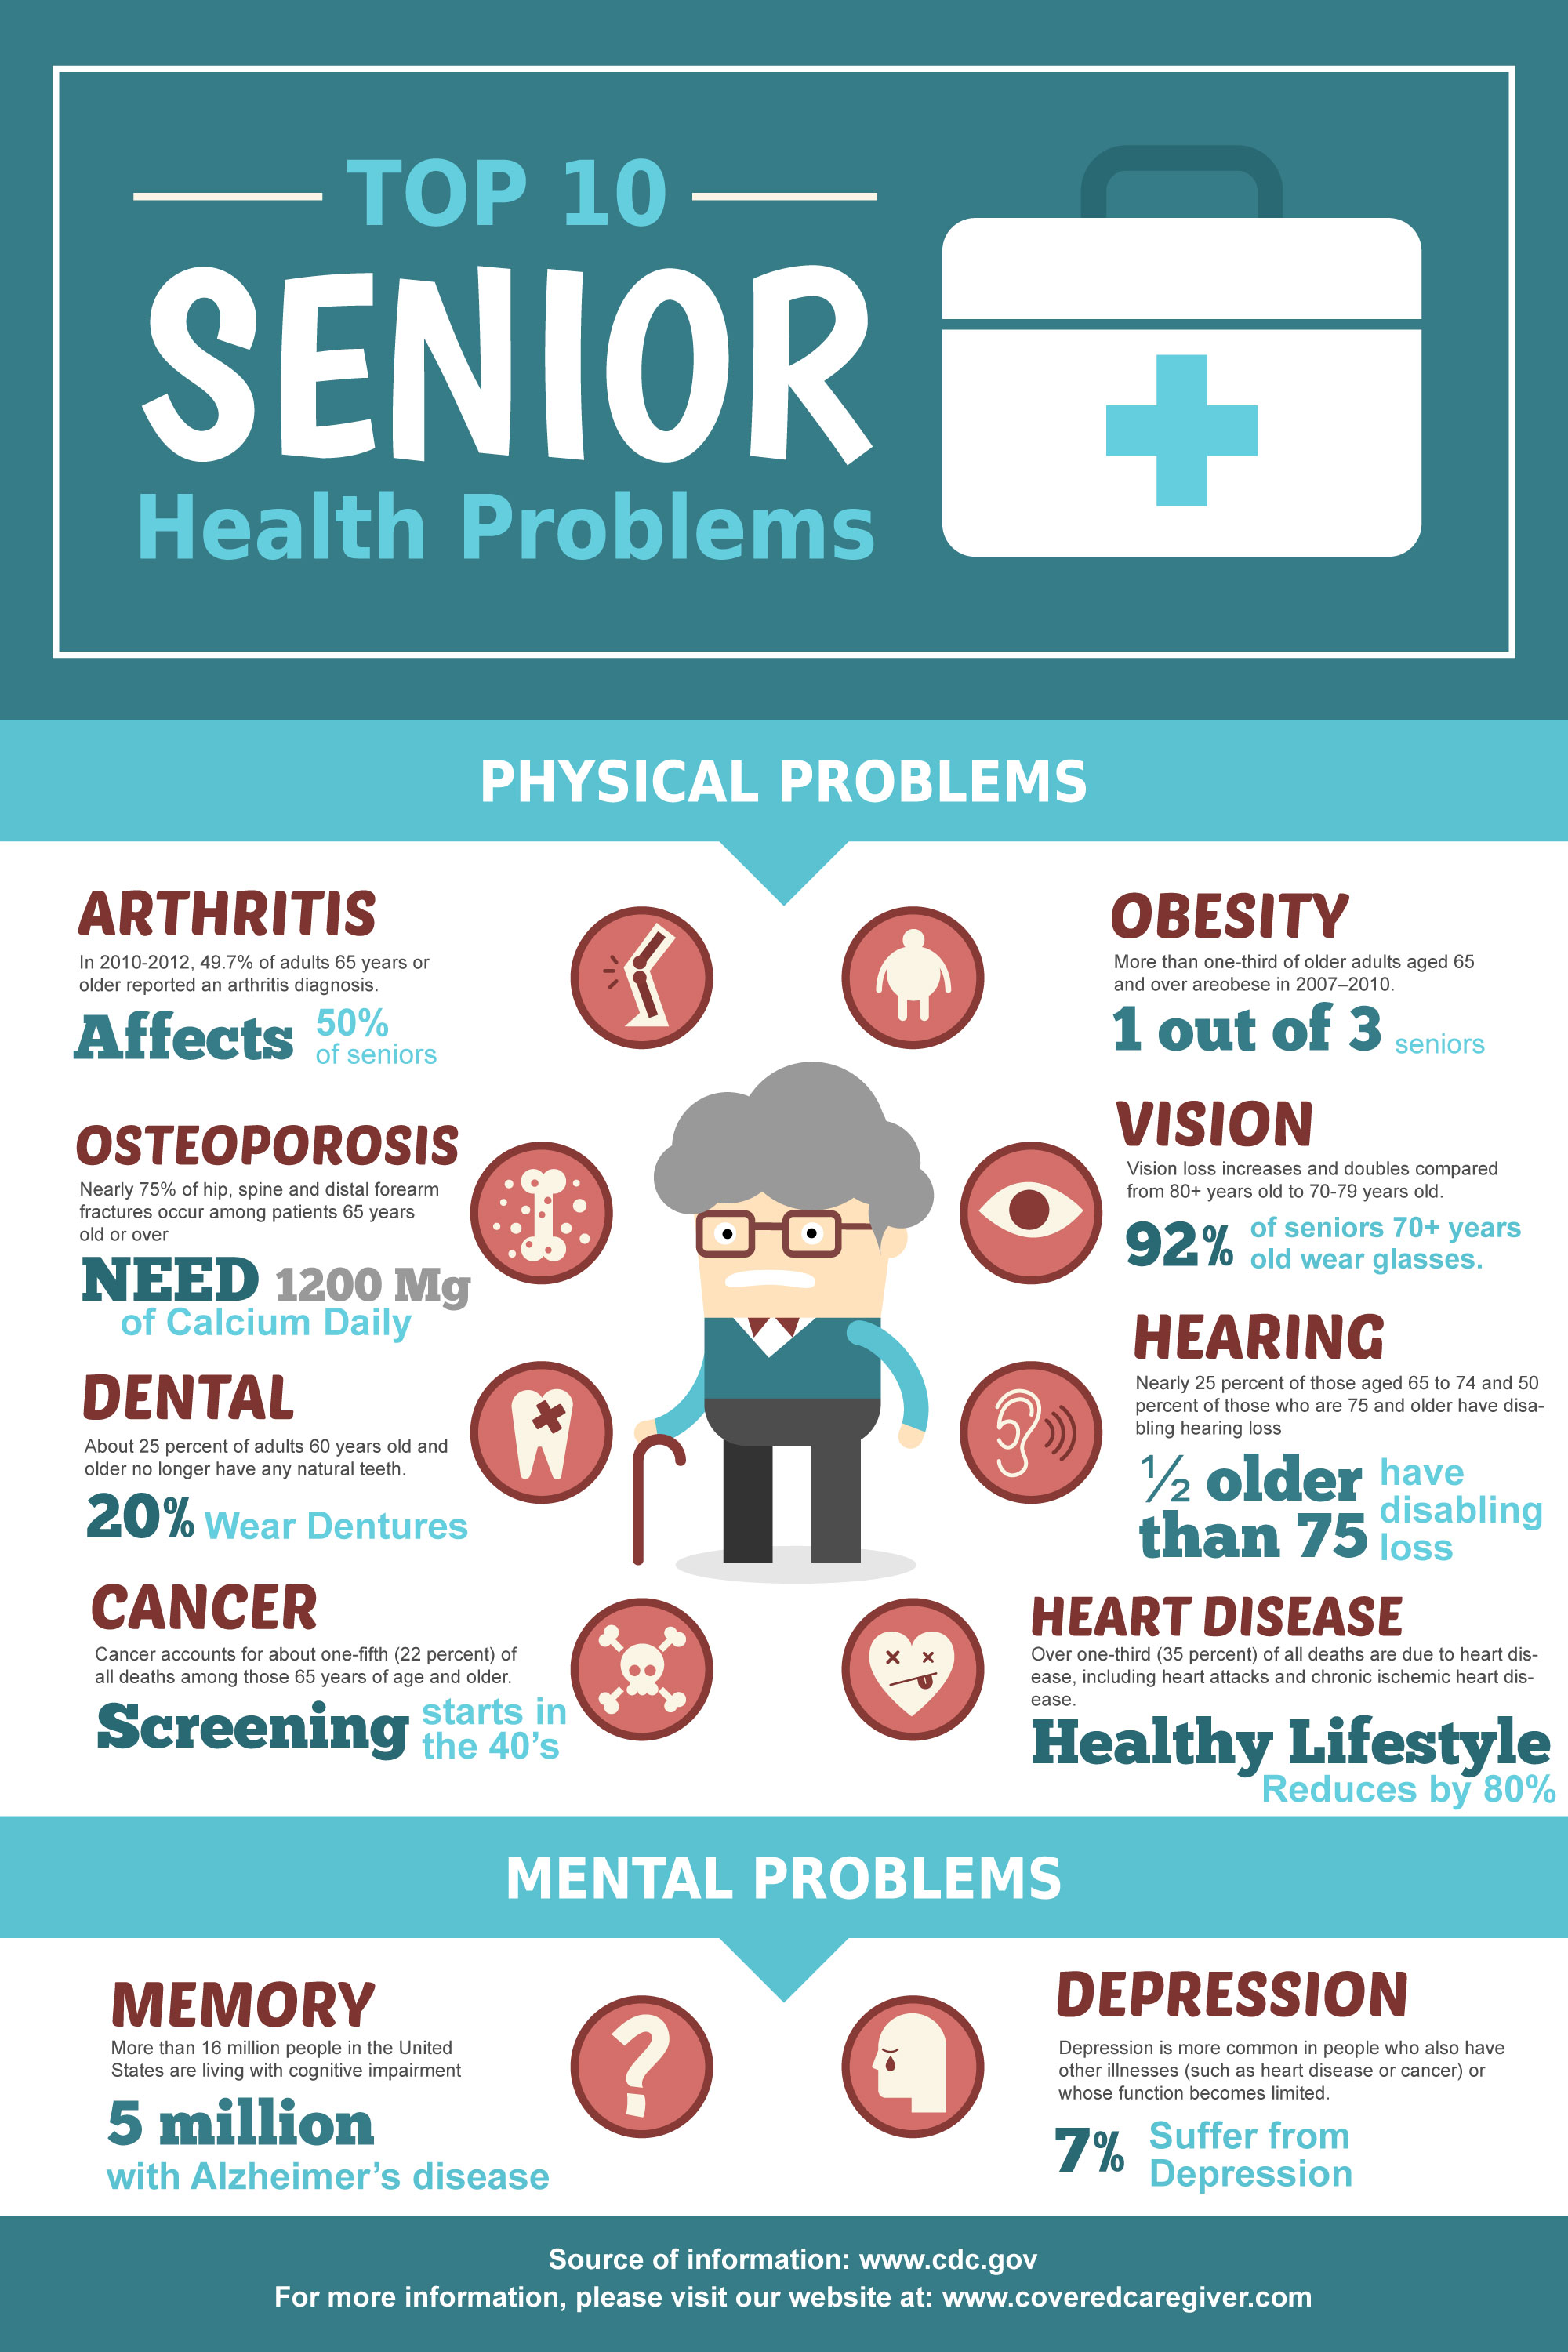 Top 10 Senior Health Problems